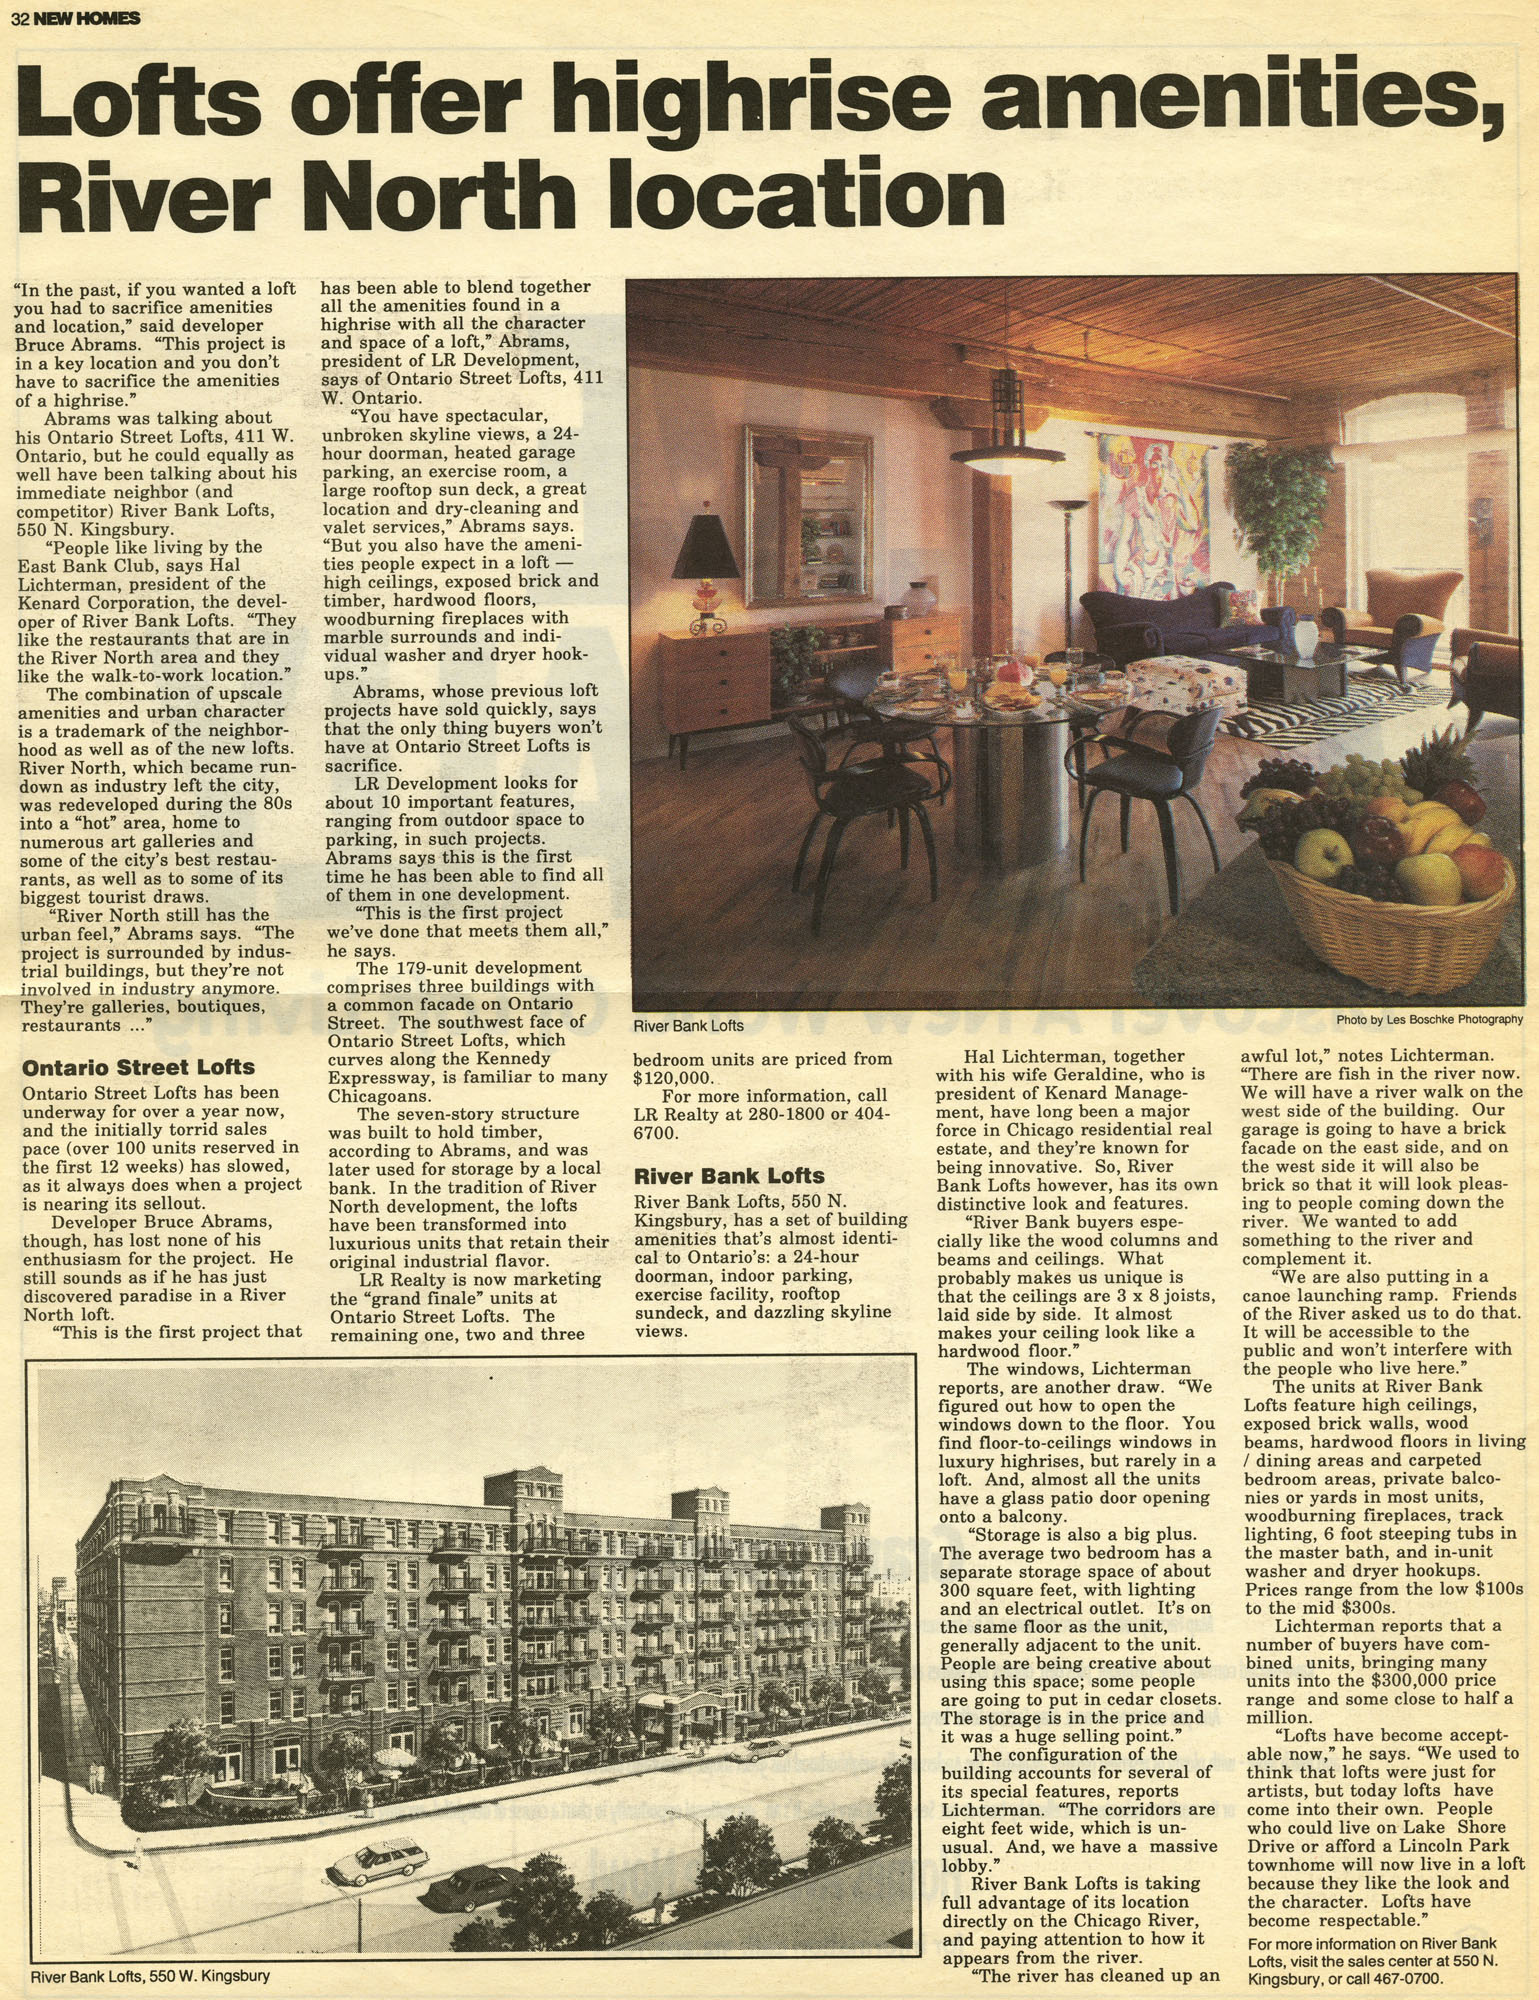 spring95, new homes- Lofts offer highrise amenities, River North location